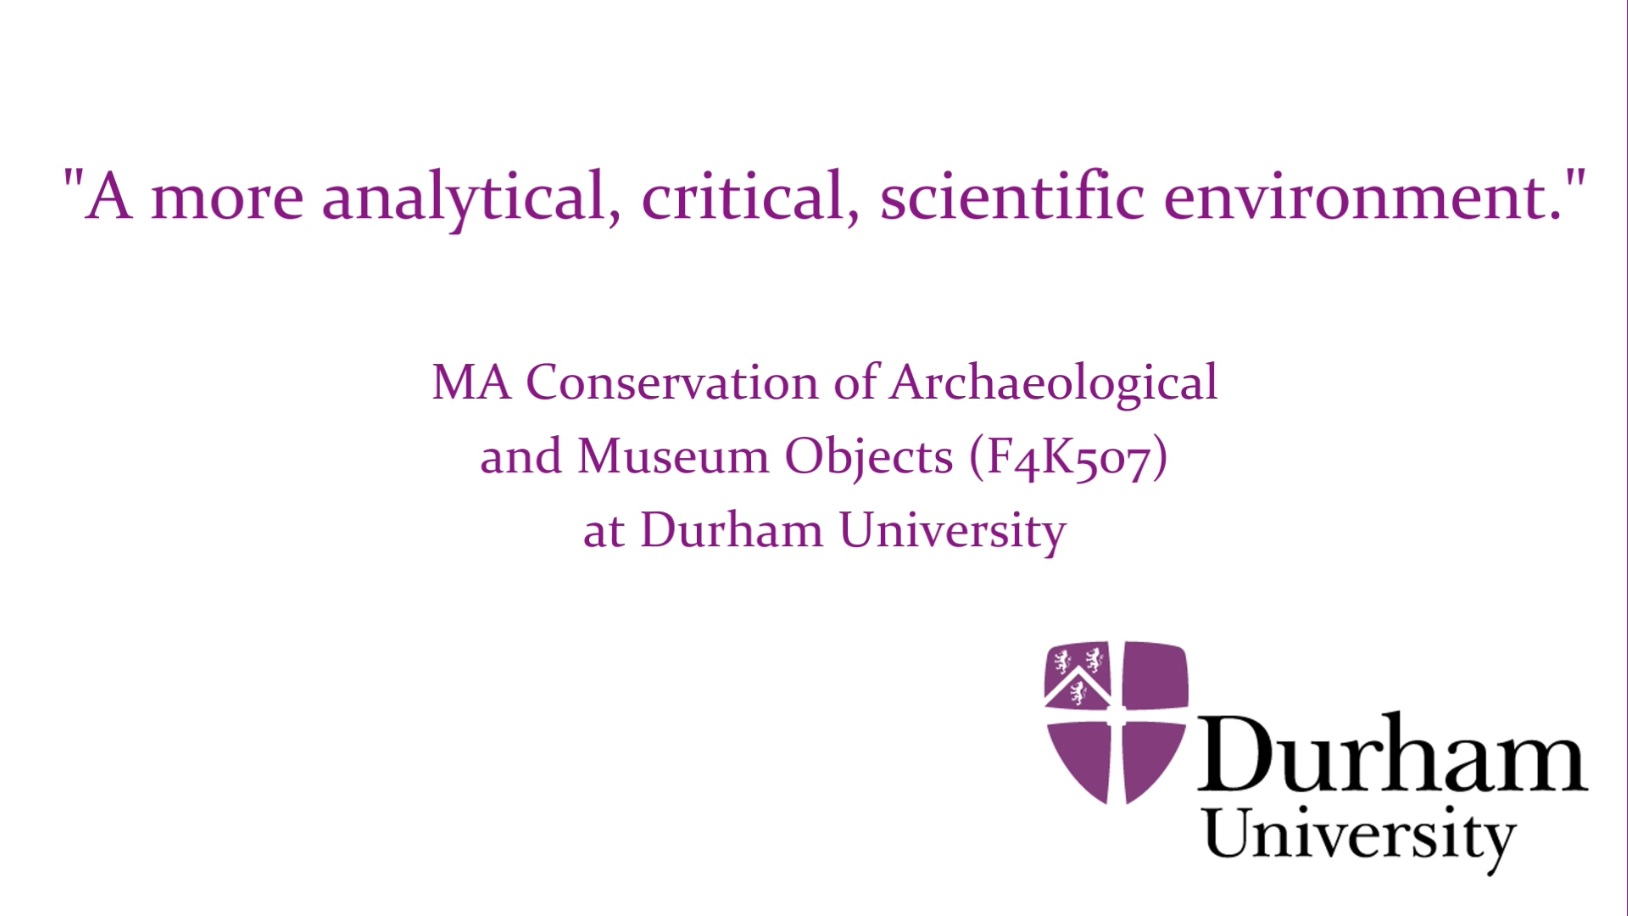 MA Conservation of Archaeological and Museums Objects at Durham University